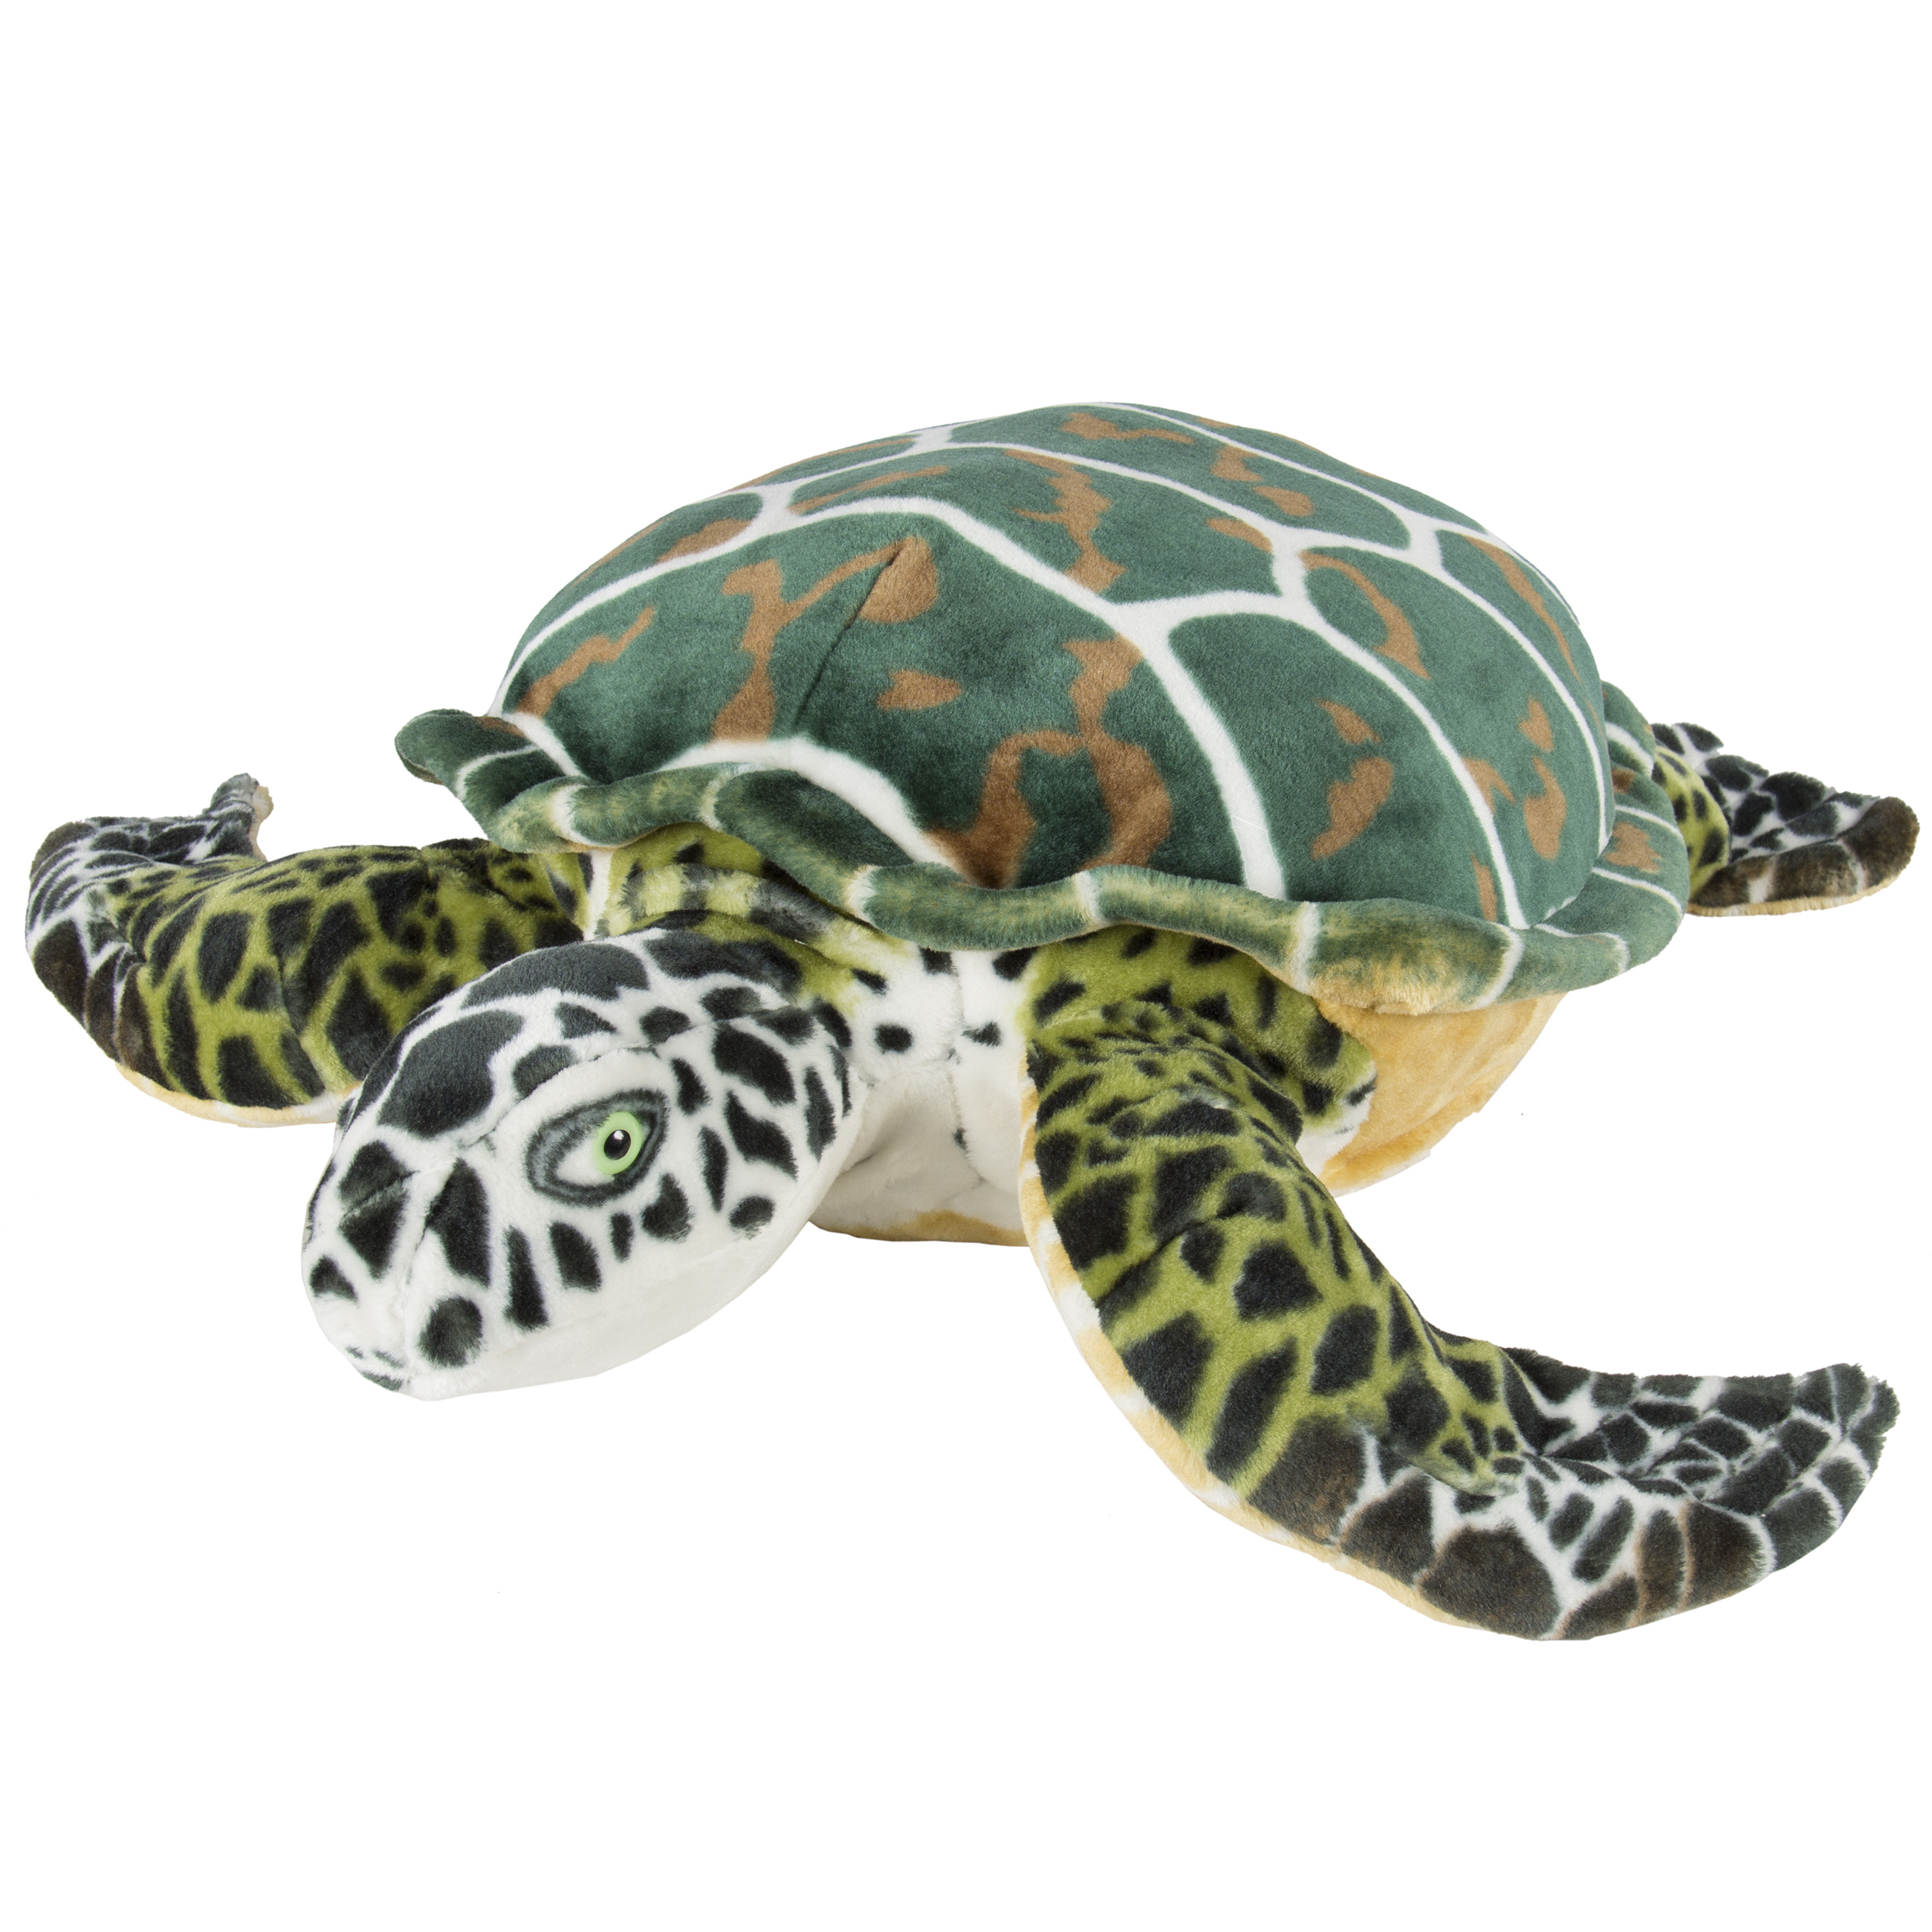 Large Sea Turtle Plush Animal Realistic Tortoise Soft Stuffed Toy Pillow Pet